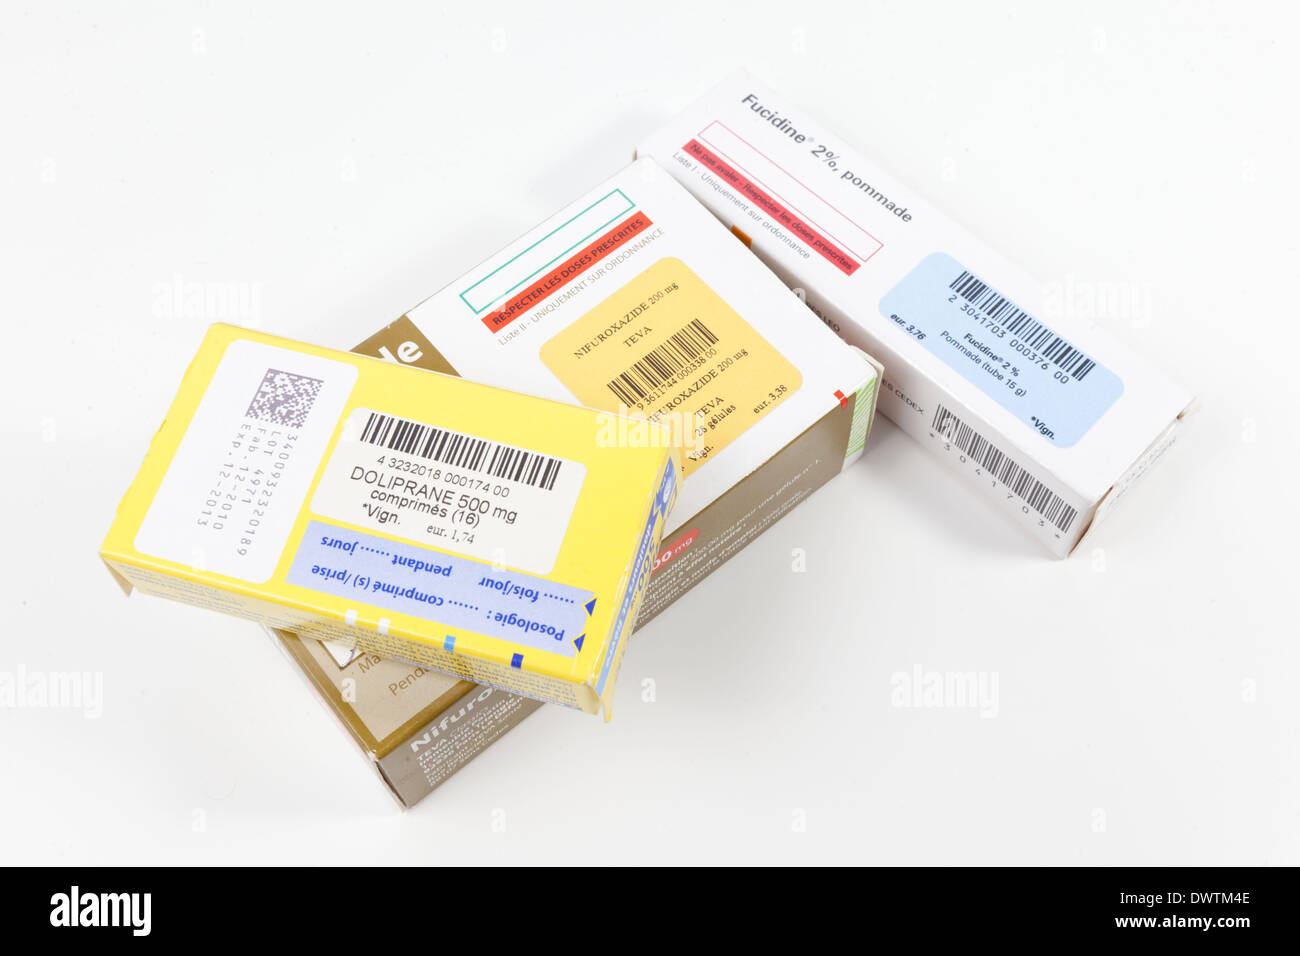 Nifuroxazide Stock Photos & Nifuroxazide Stock Images - Alamy